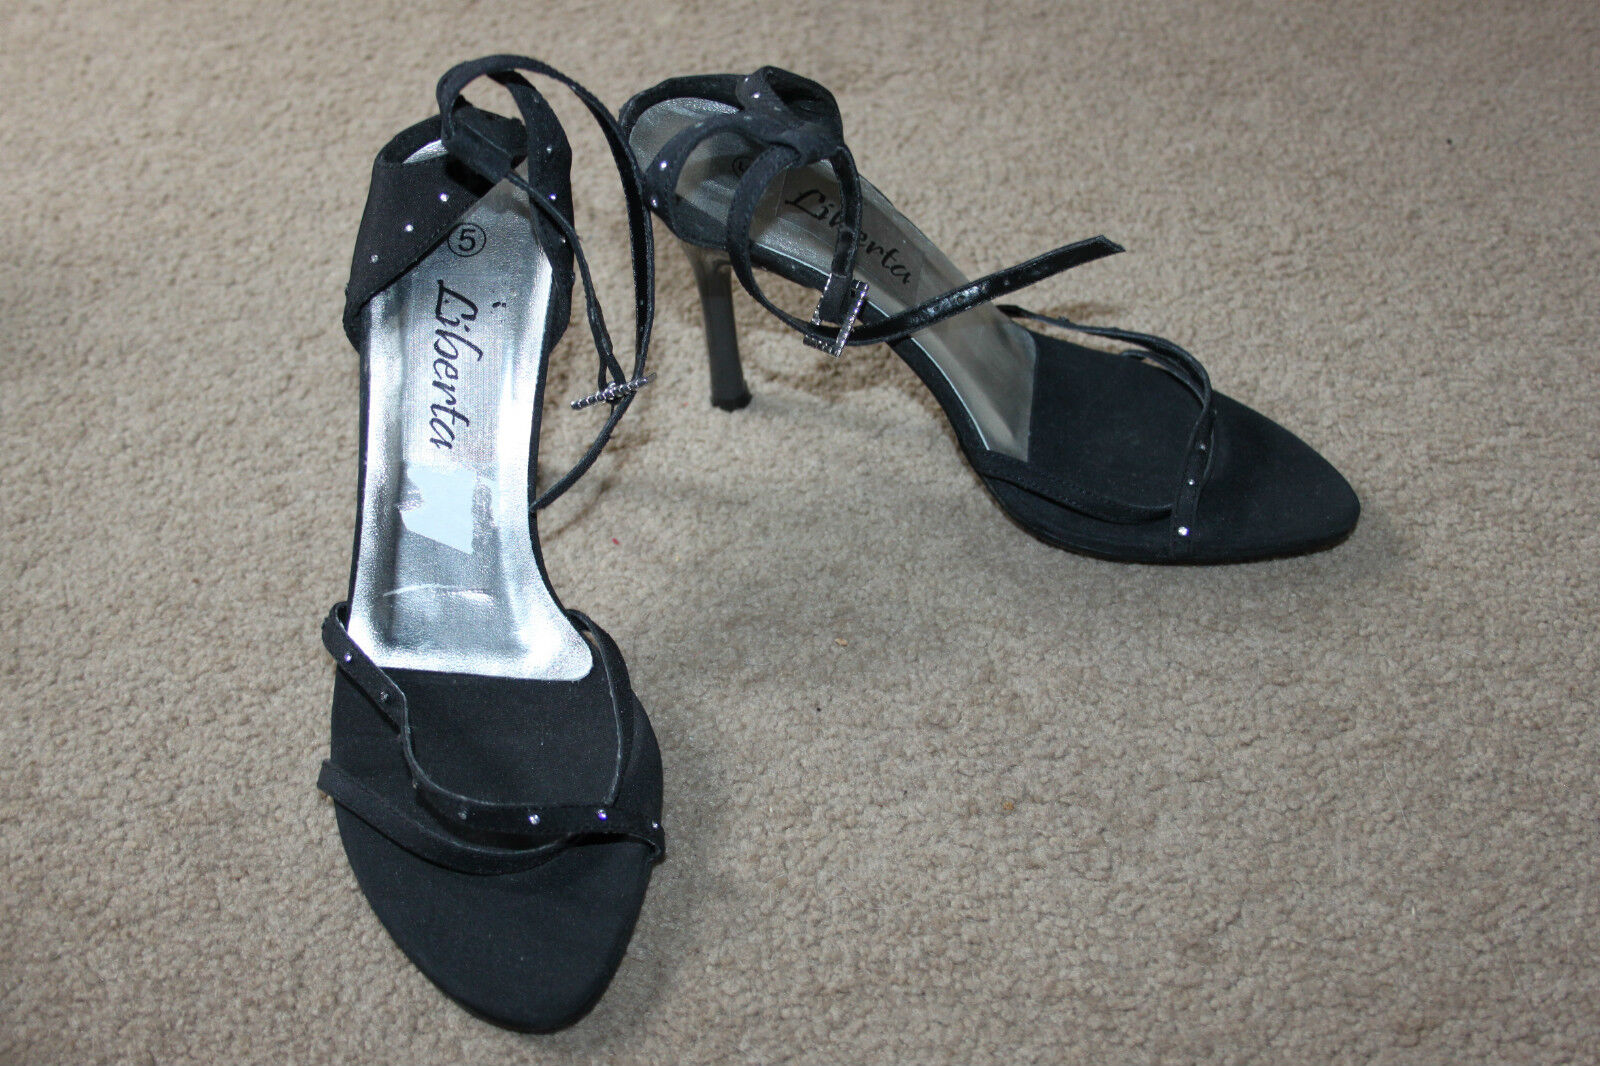 Ladies Black Diamante Strappy Shoes Evening Sie 5 by Liberta Evening Shoes Party 21f6c8